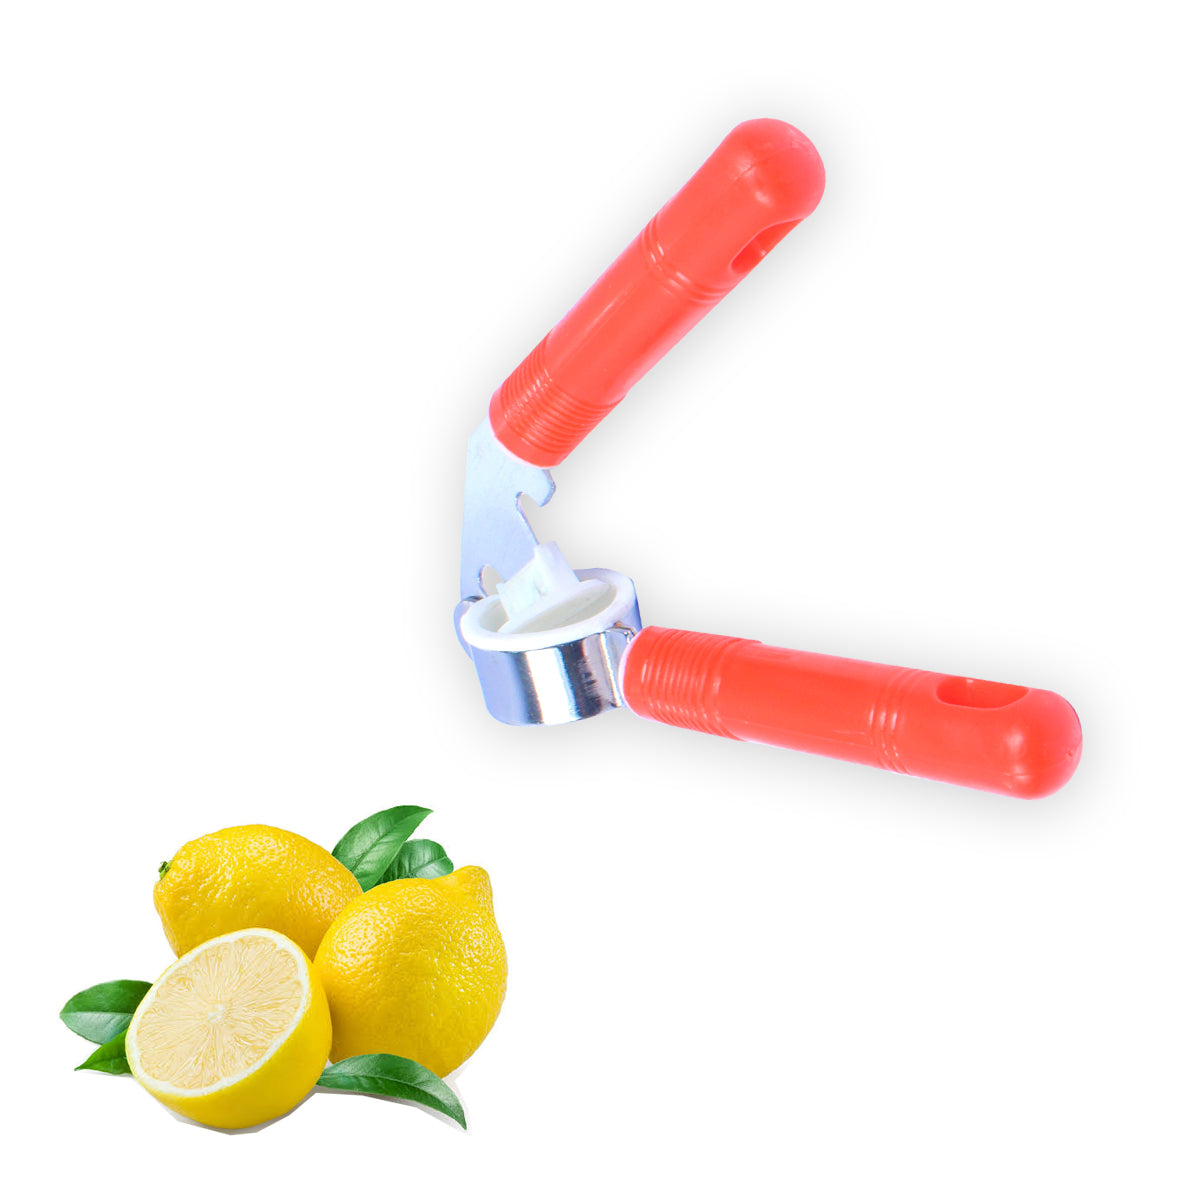 Lemon Squeezer In Red Color-JW126